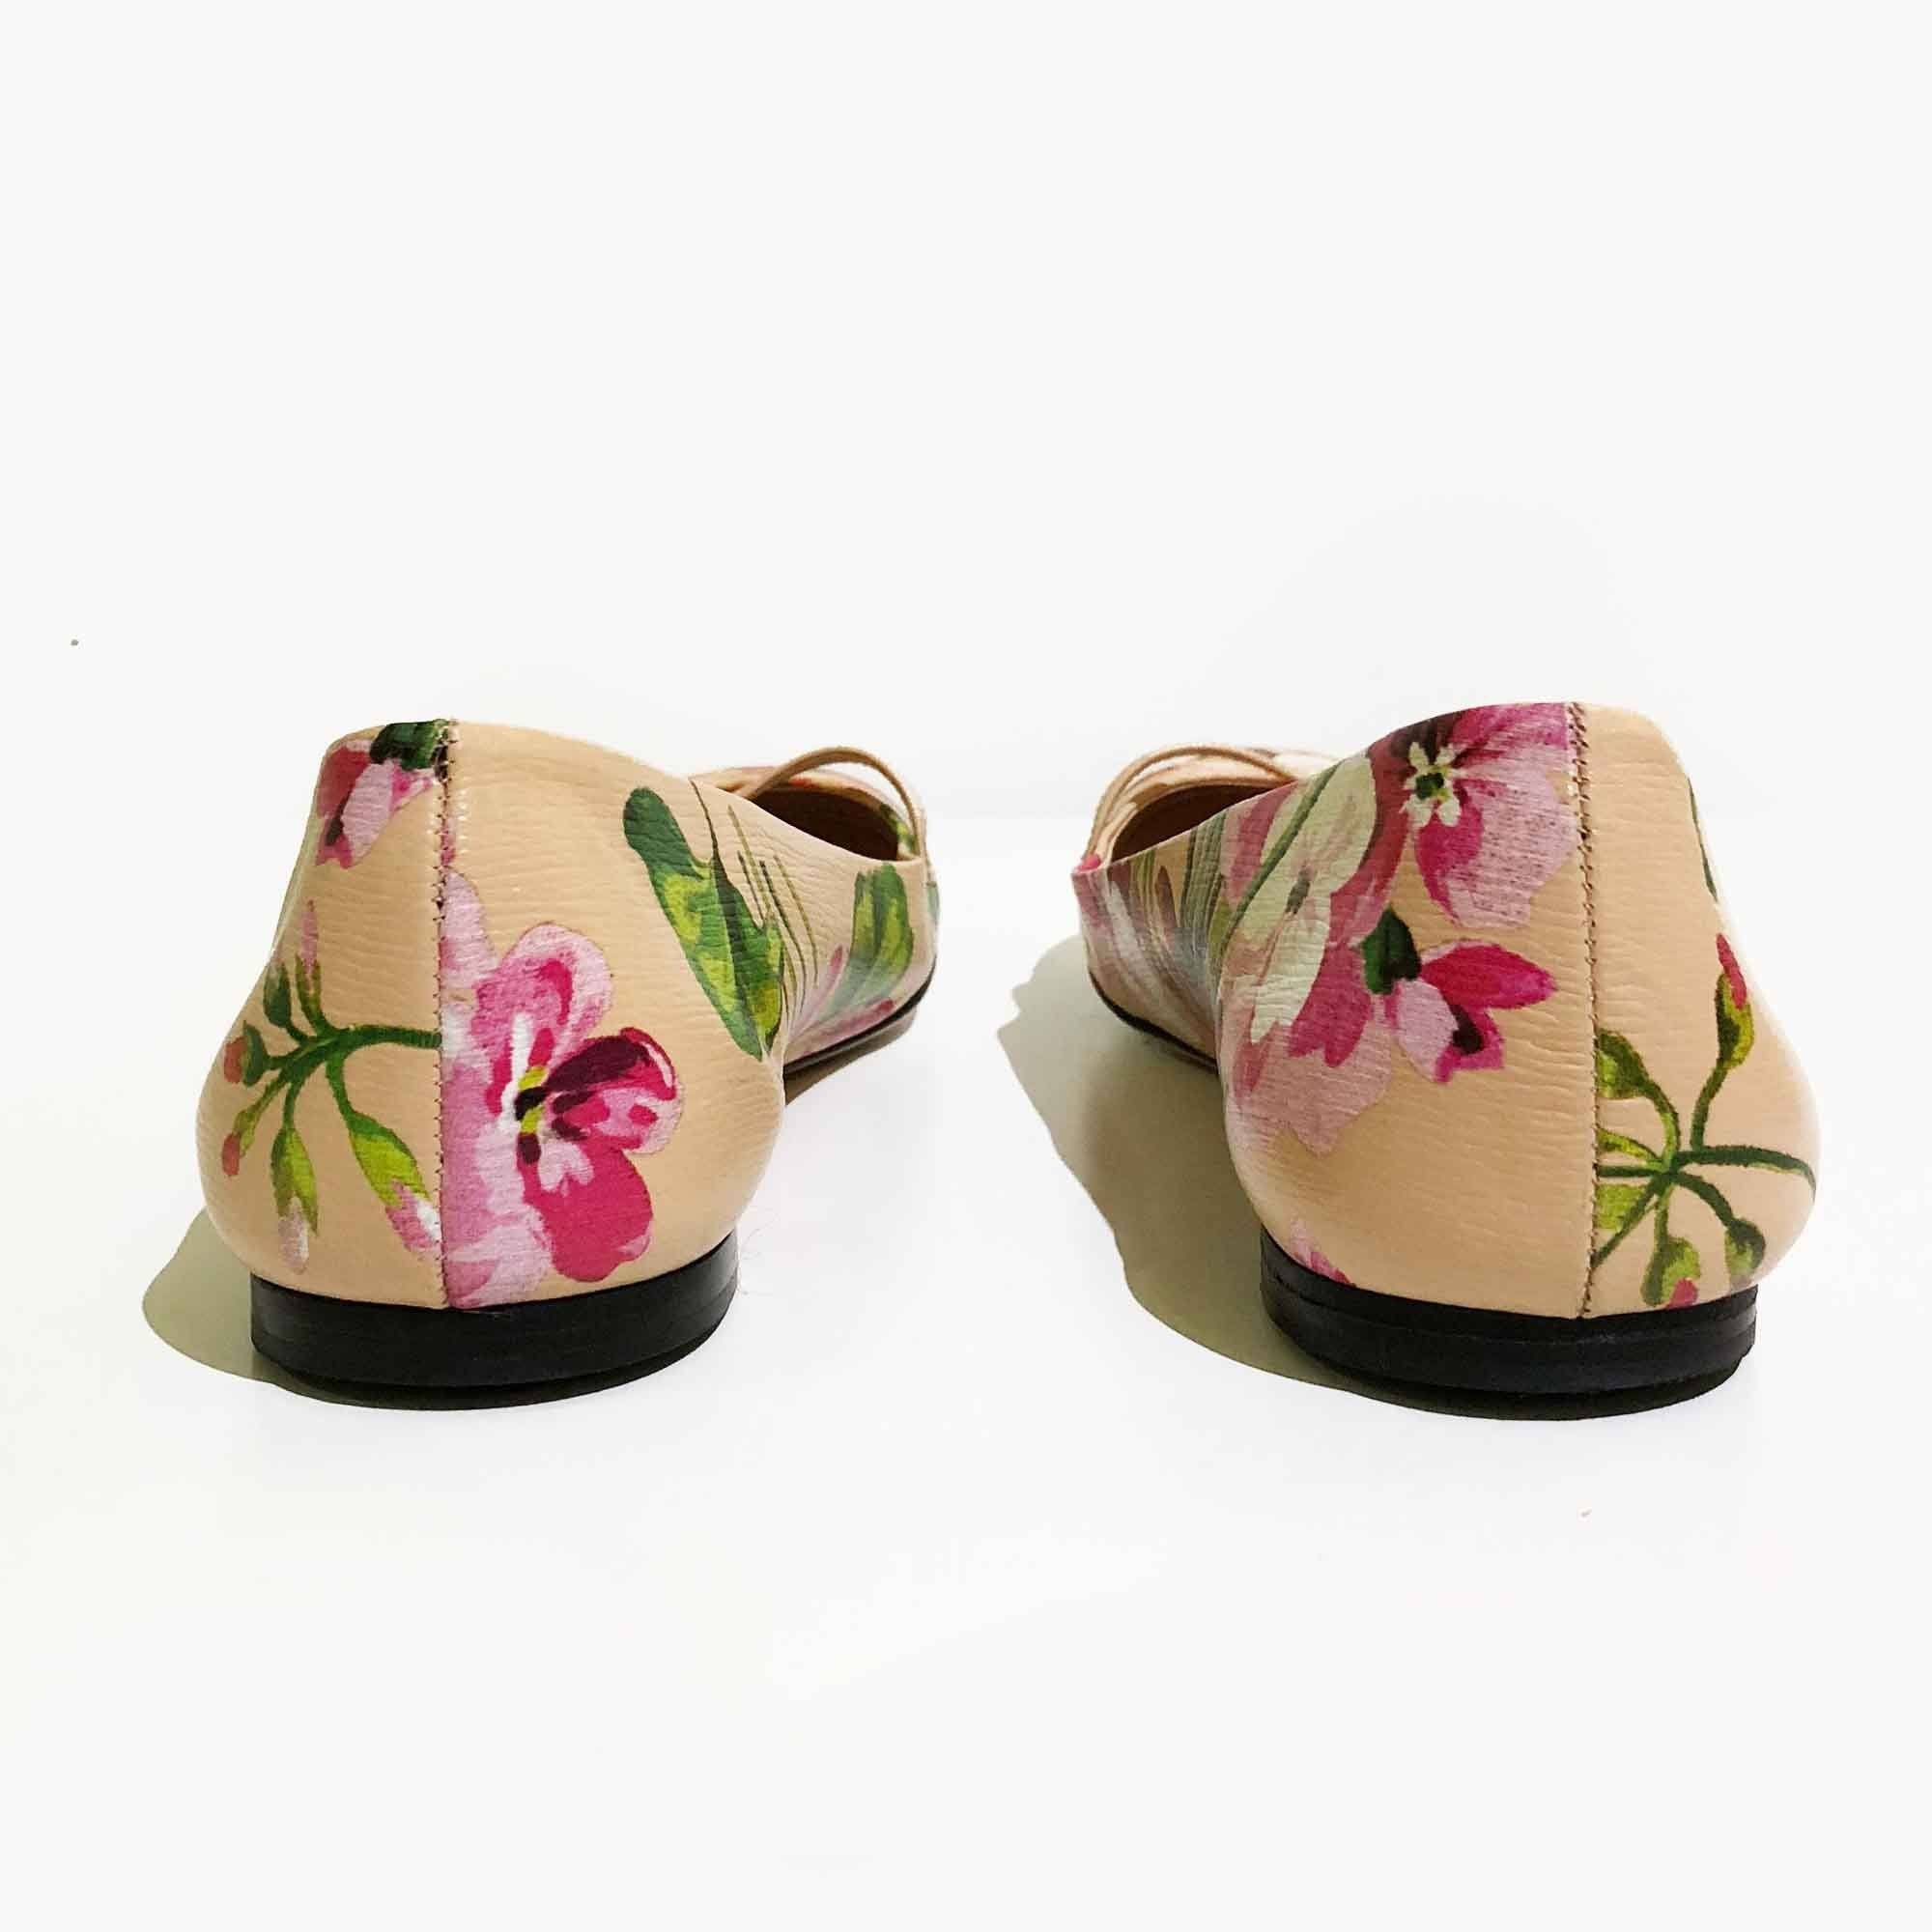 Gucci 'Shanghai Blooms' leather Mary Jane flats